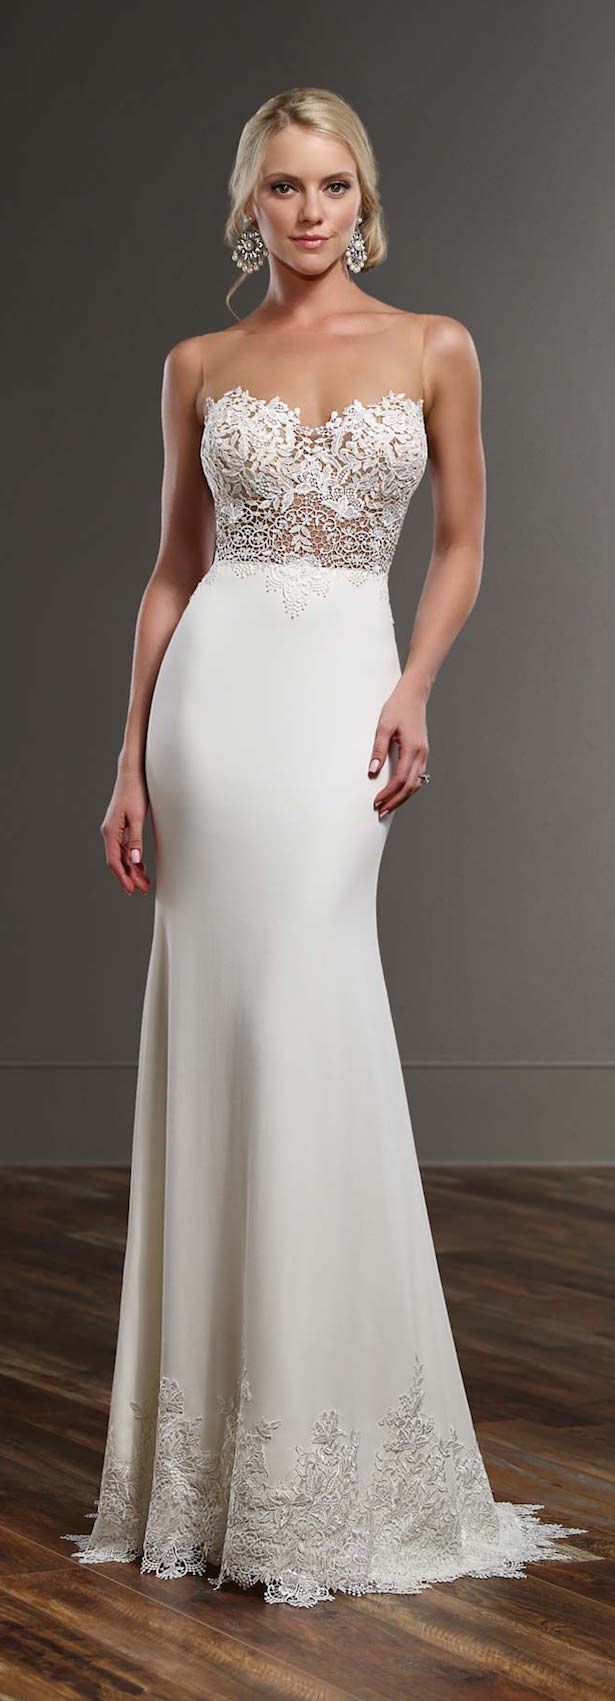 Unique Best Wedding Dresses of